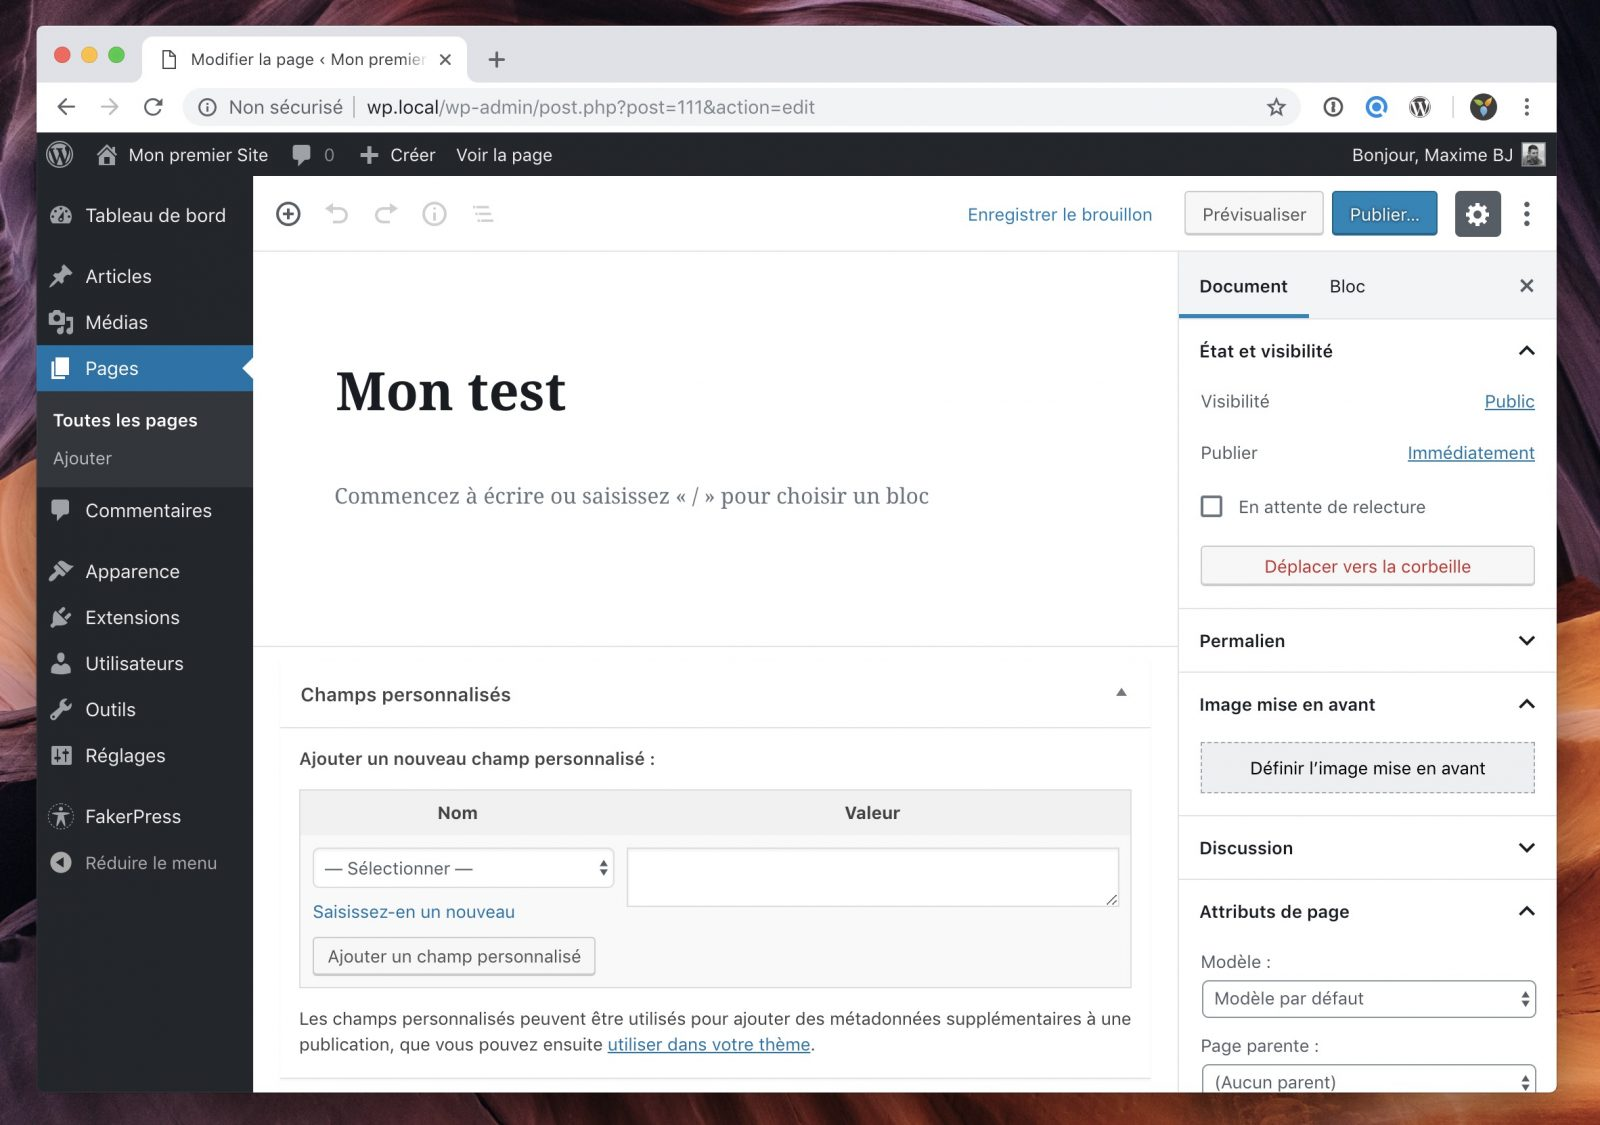 L'interface de gestion des custom fields apparait en bas de l'écran